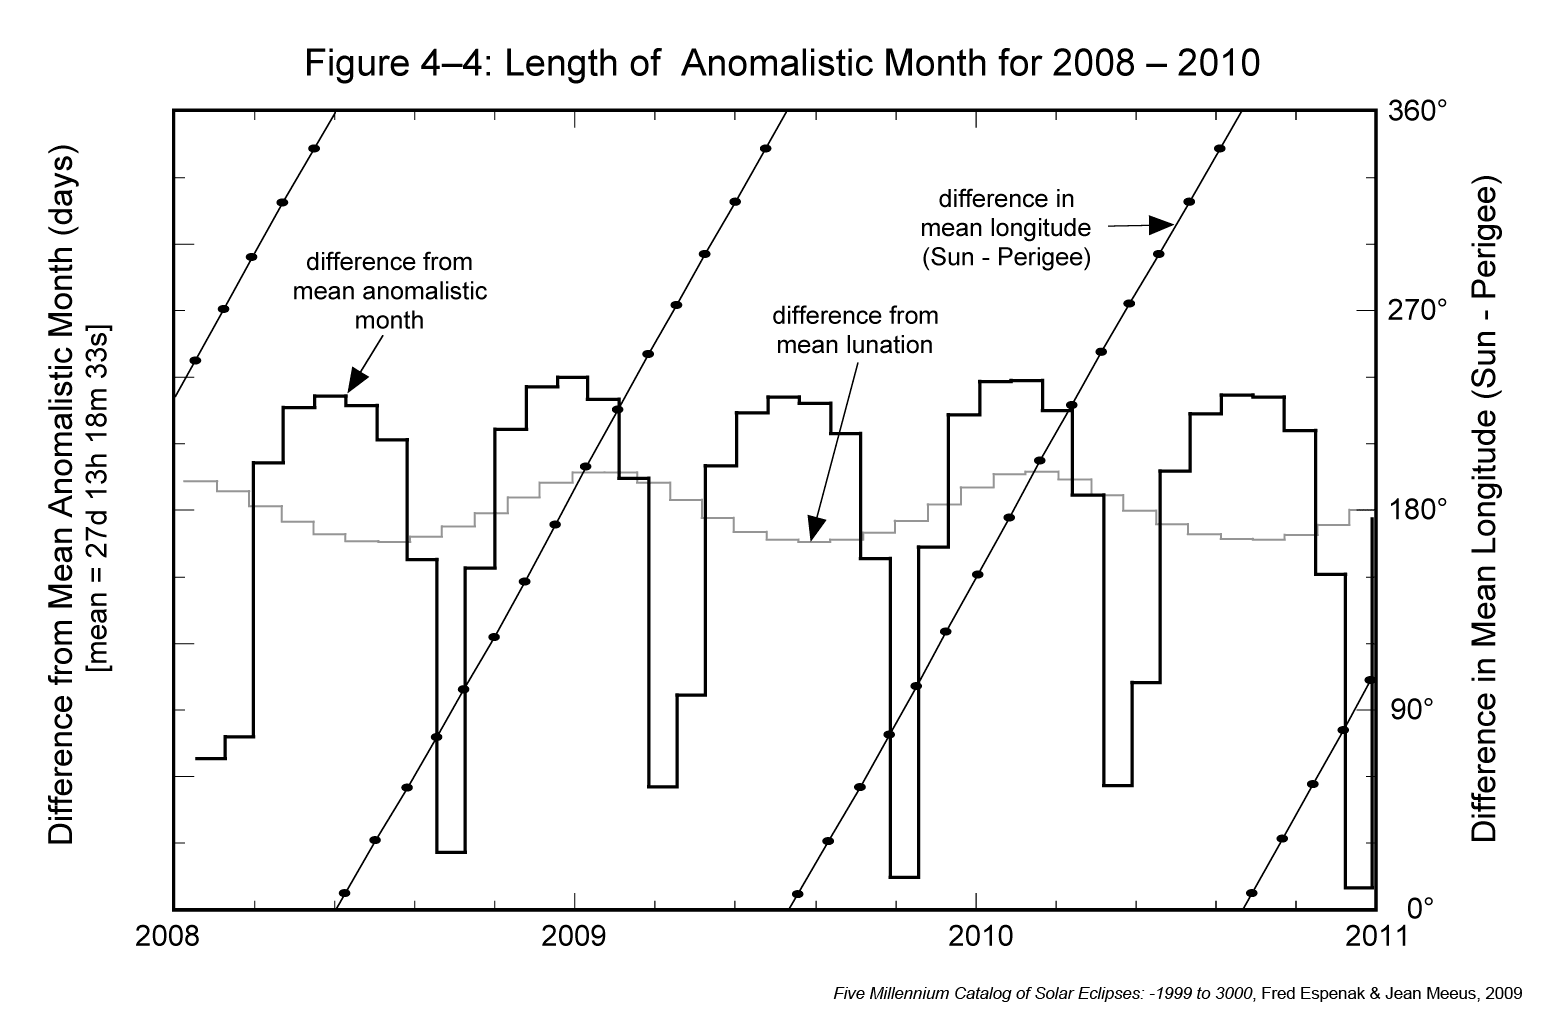 Length of Anomalistic Month variation.